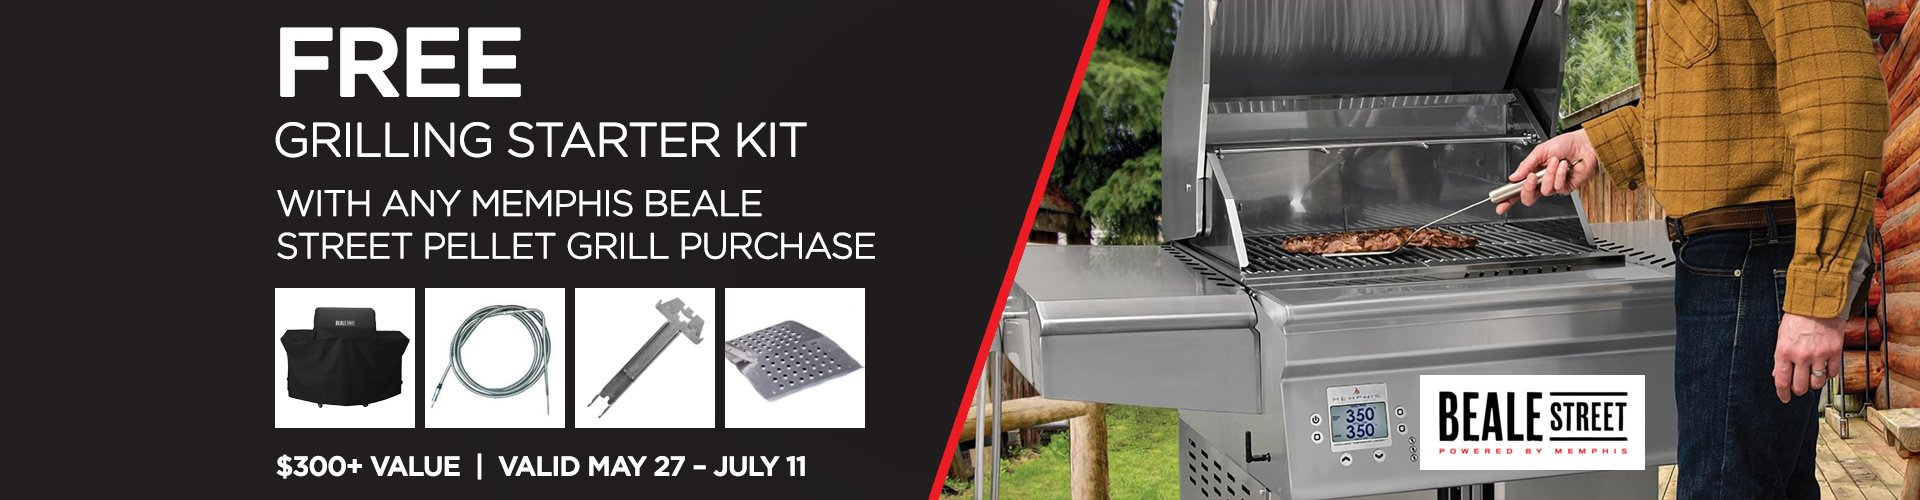 Receive a FREE Grilling Starter Kit with any Memphis Beale Street Pellet Grill Purchase